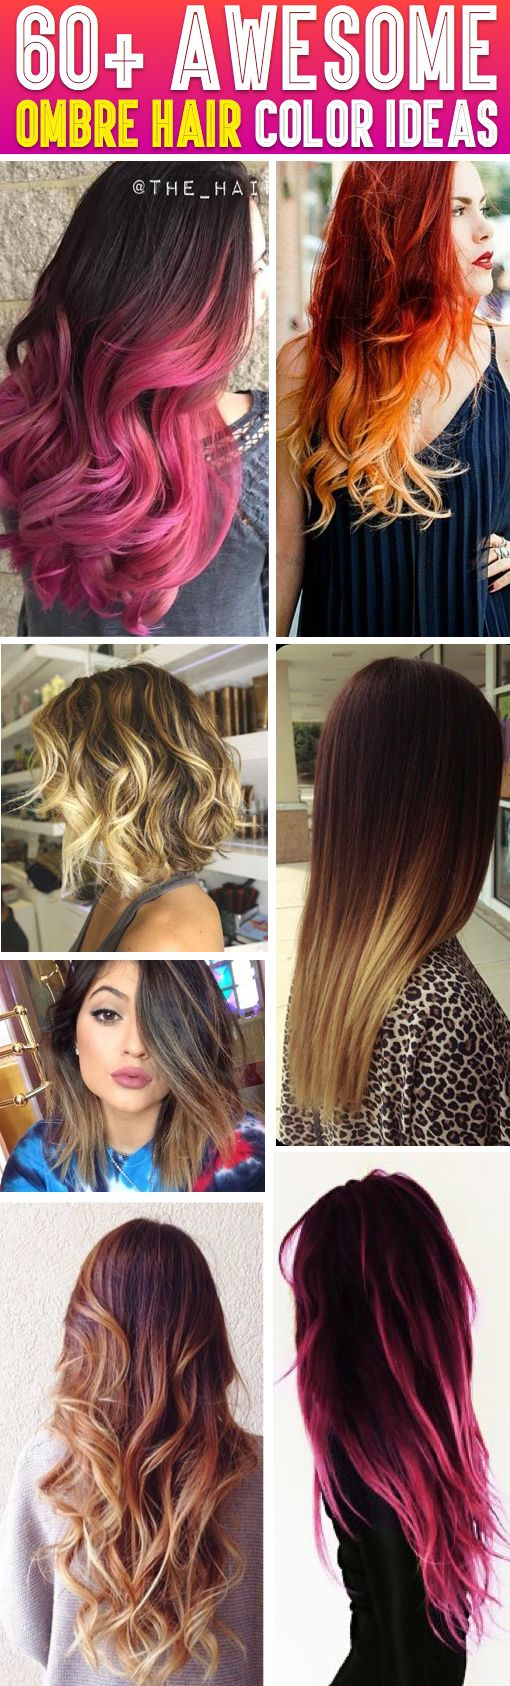 60 Awesome Ombre Hair Color Ideas To Try At Home! - Here you will find more than 60 Different Ombre Hair Color ideas and techniques: #ombre#hair#color